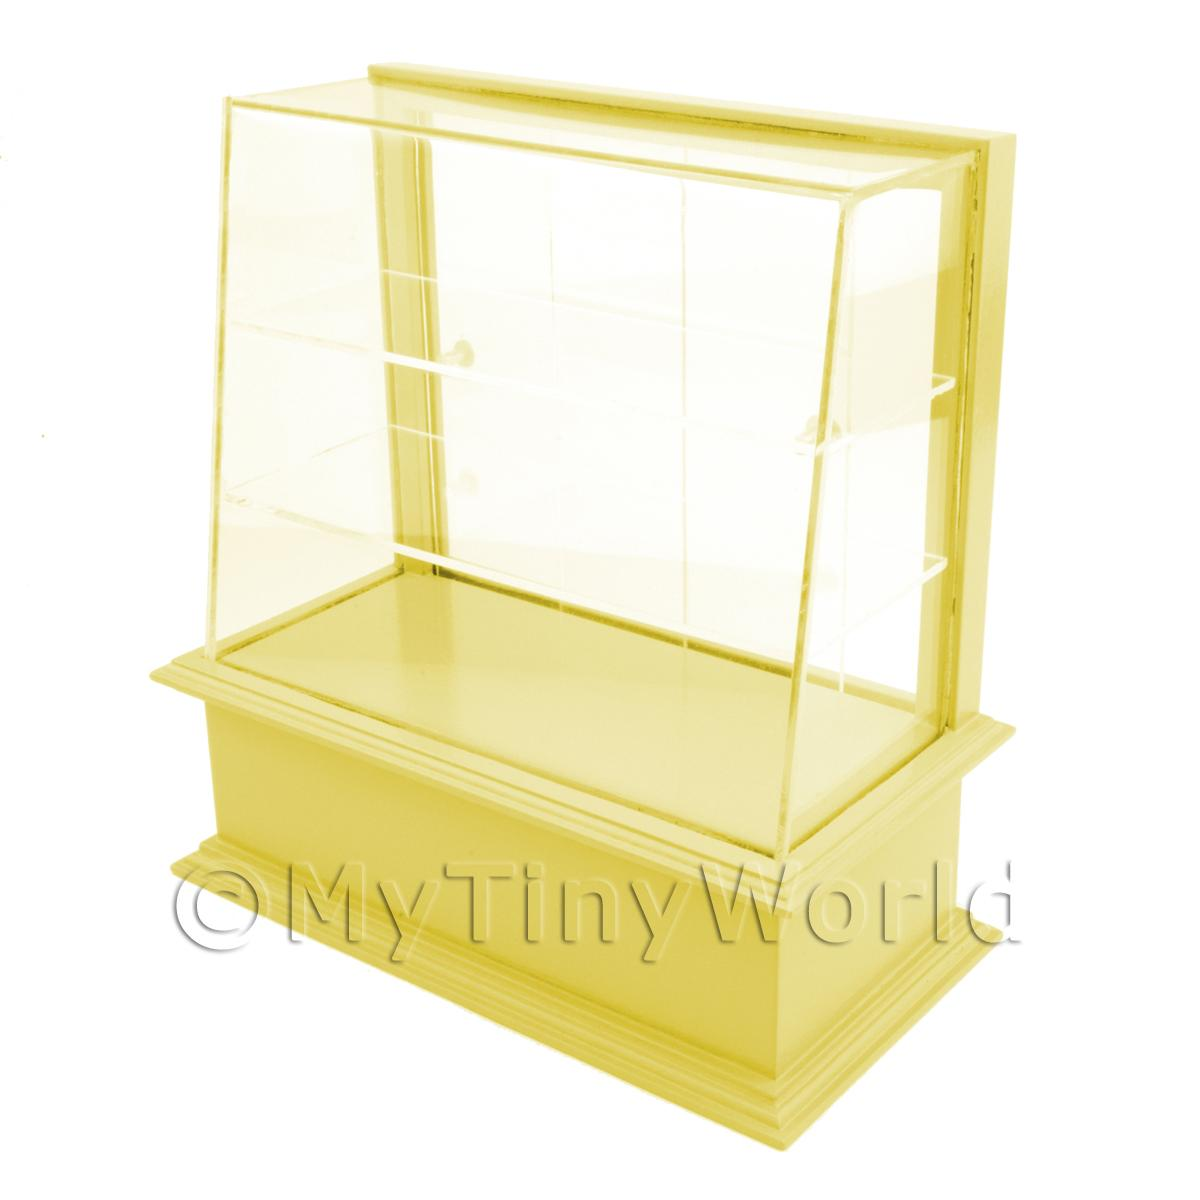 Miniature Small Yellow Wood Cake / Food Display Counter